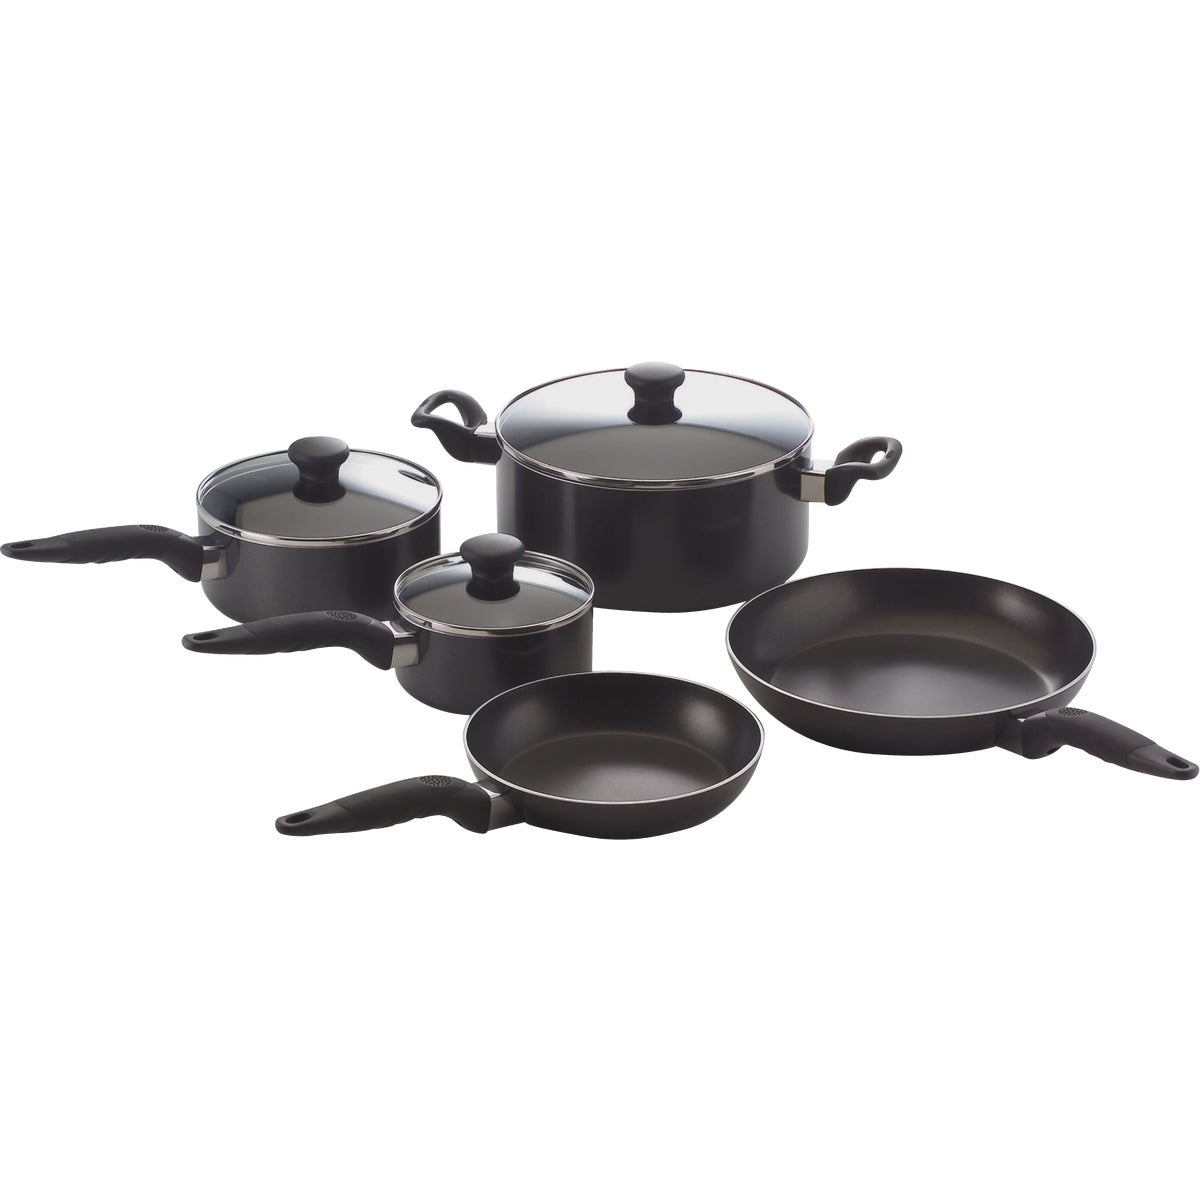 10PC GET A GRIP COOKWARE